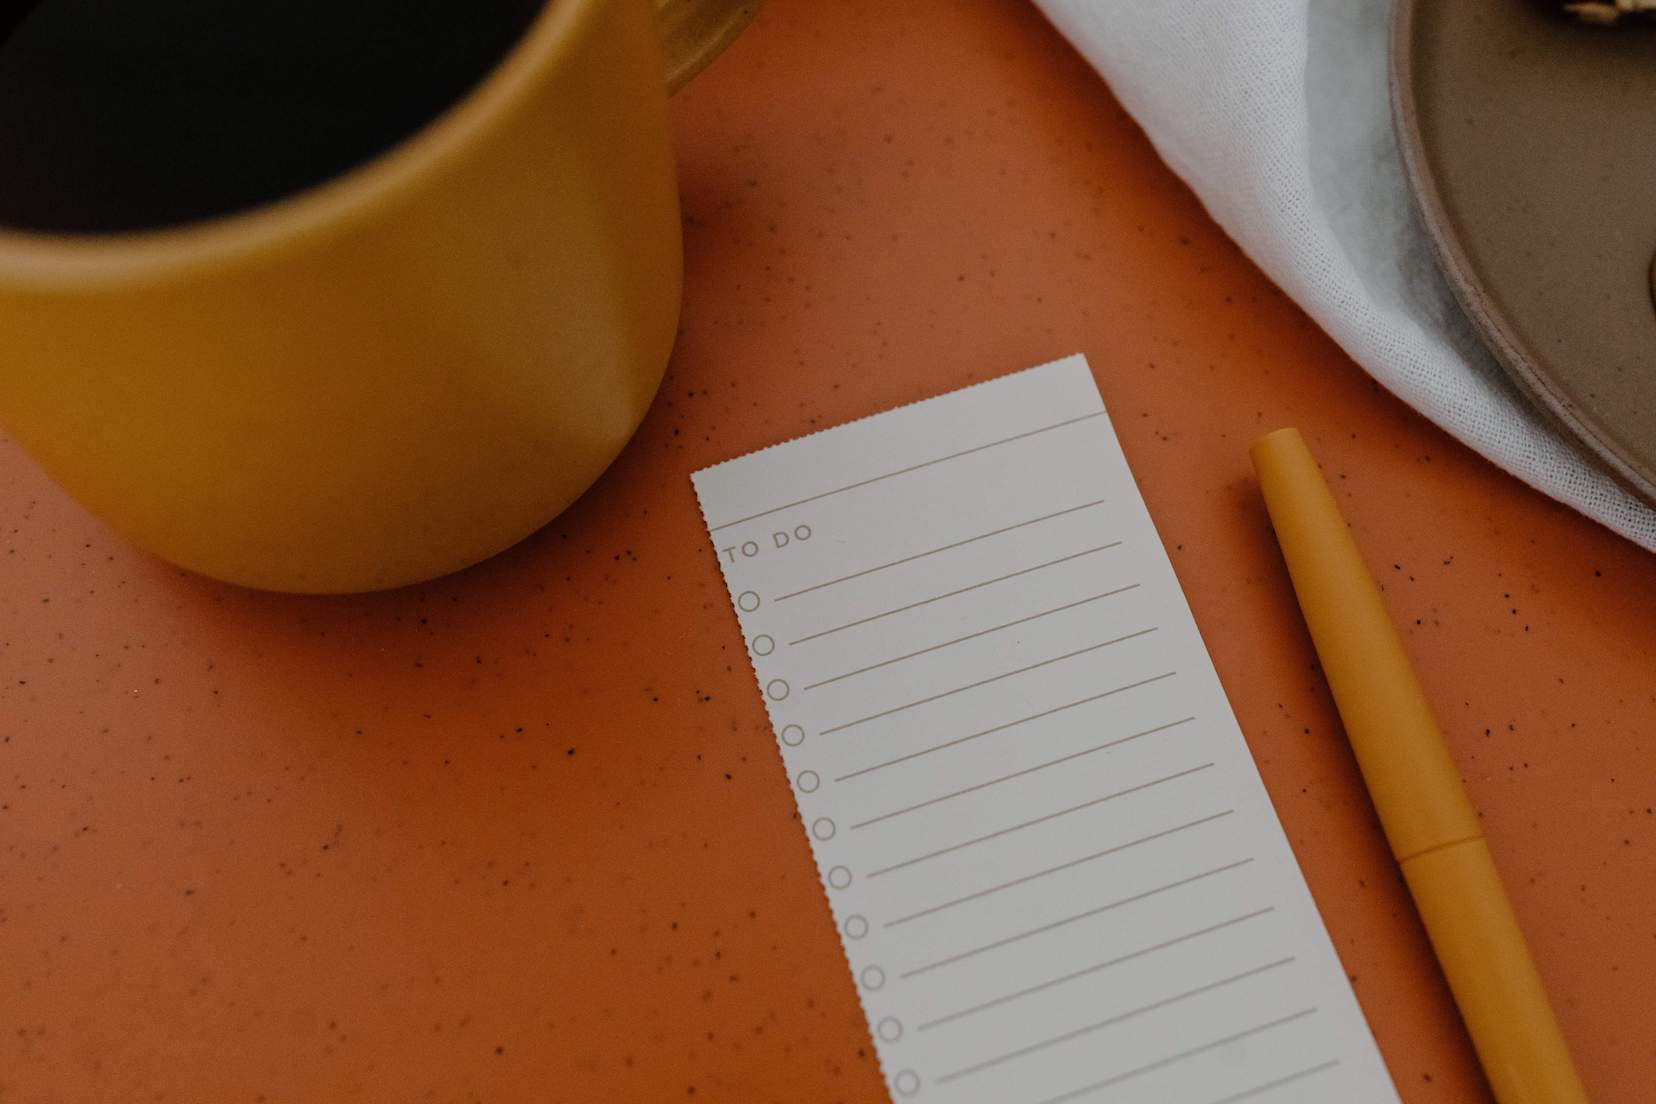 Orange coffee cup on an orange table with a to-do list and orange pen